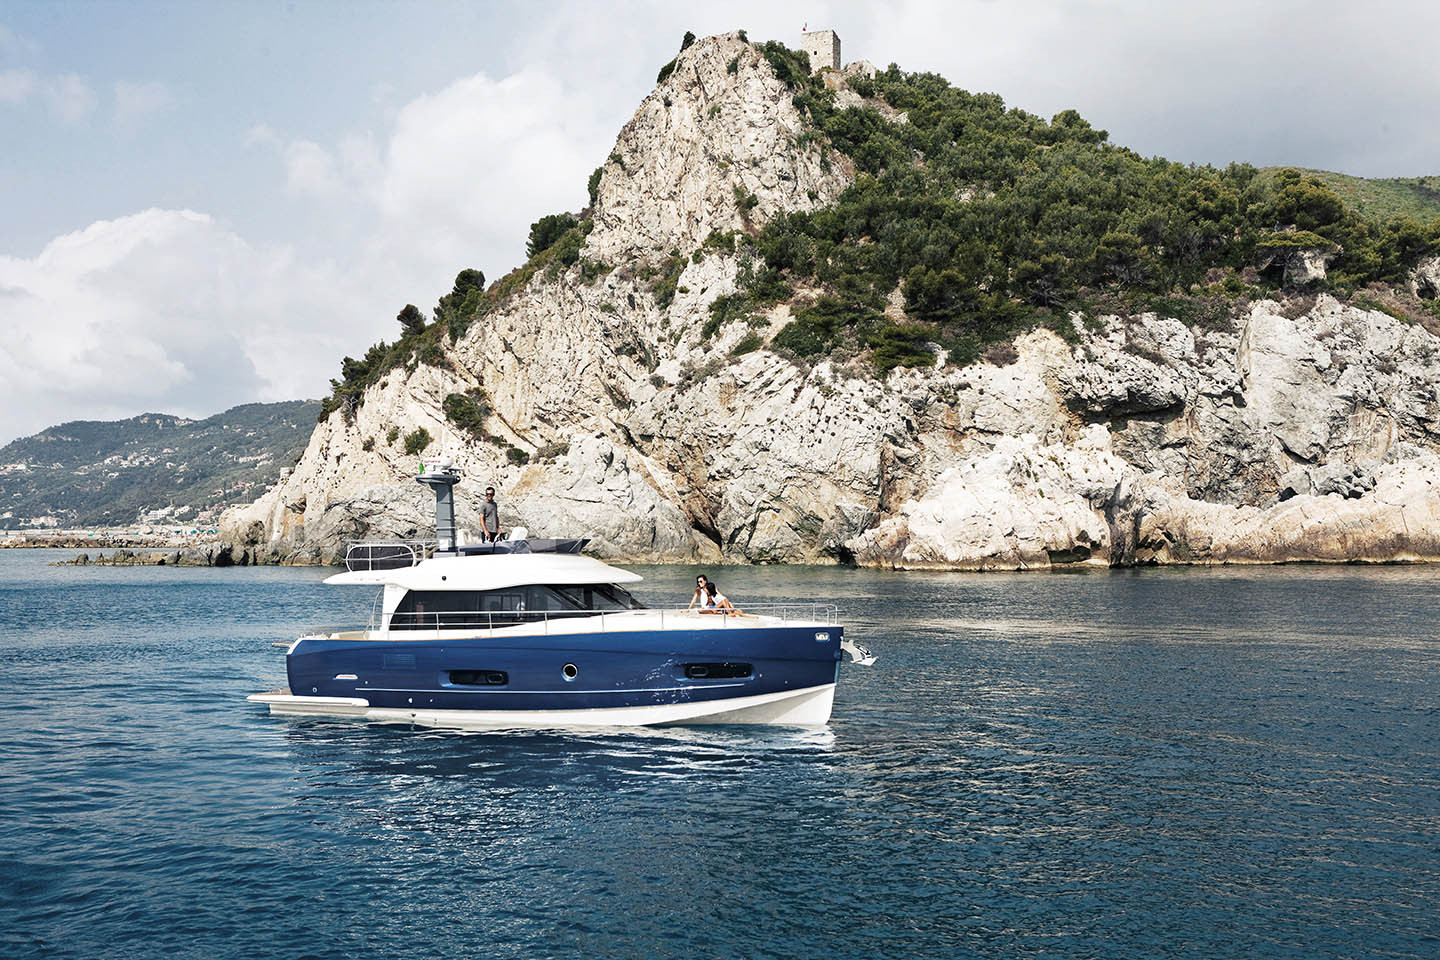 Azimut 43 Magellano Yacht at Sea